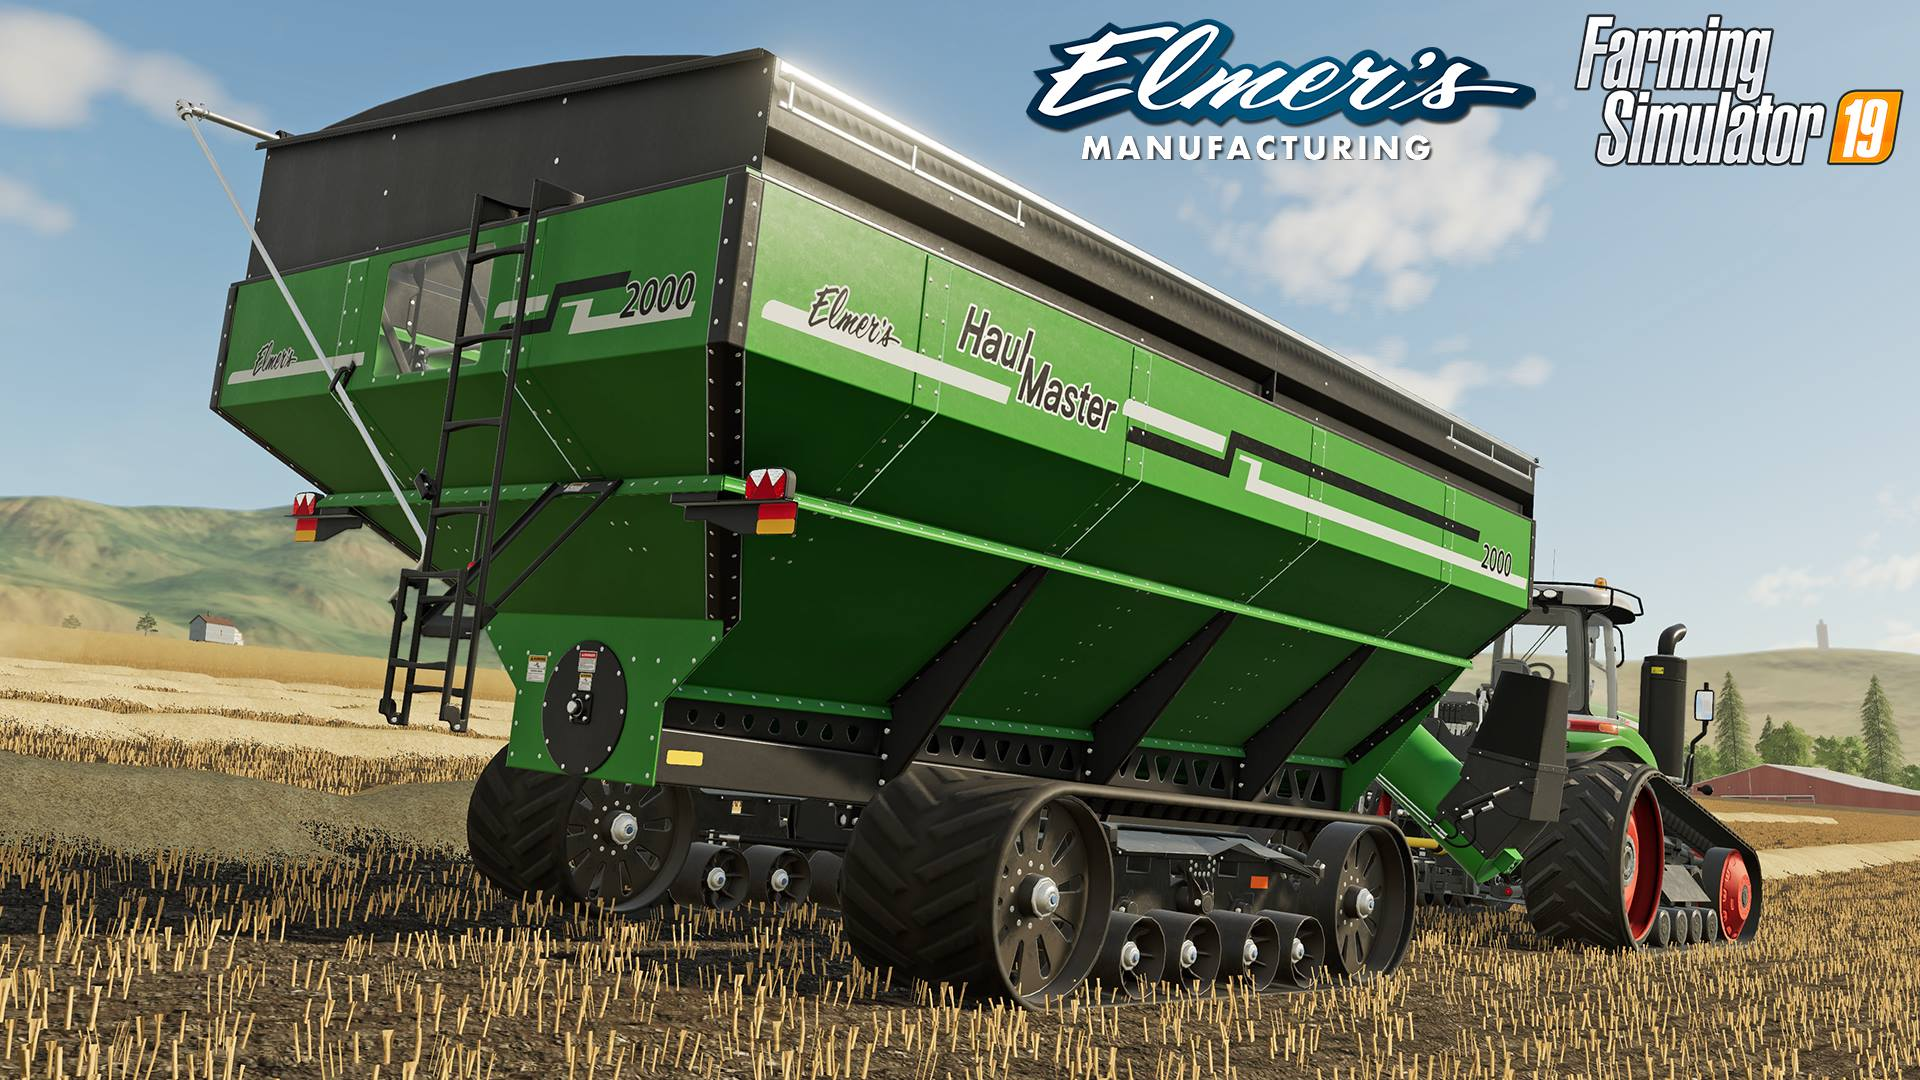 The Elmer's Manufacturing Haulmaster Brand will be in